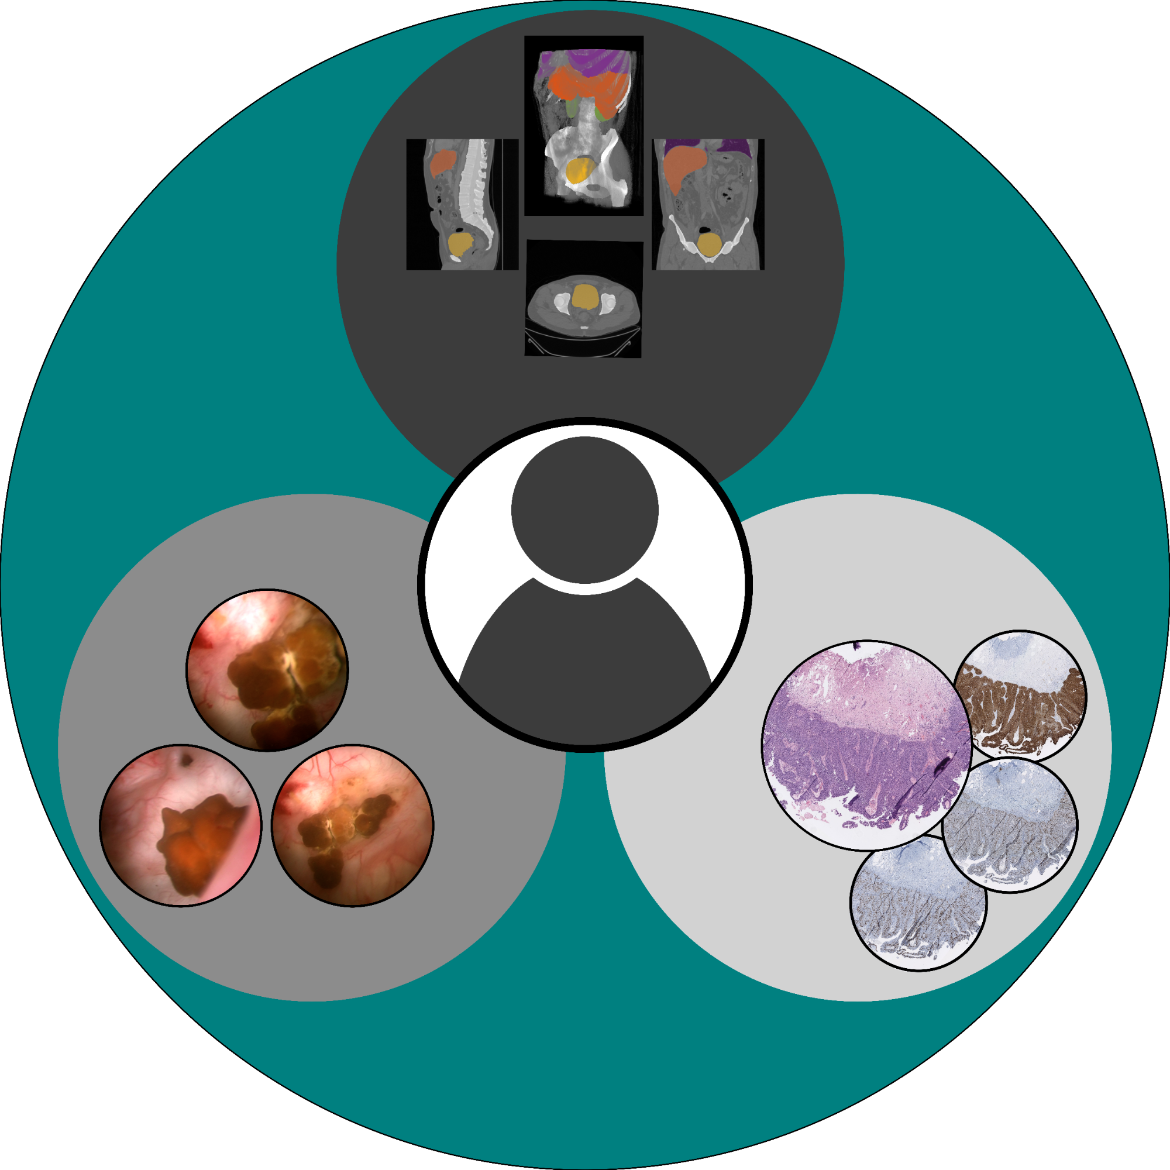 Multimodal database of urothelial carcinoma. Various clinically relevant diagnostic methods are combined, especially endoscopic video sequences and histopathological sections stained with different immunohistochemical methods.